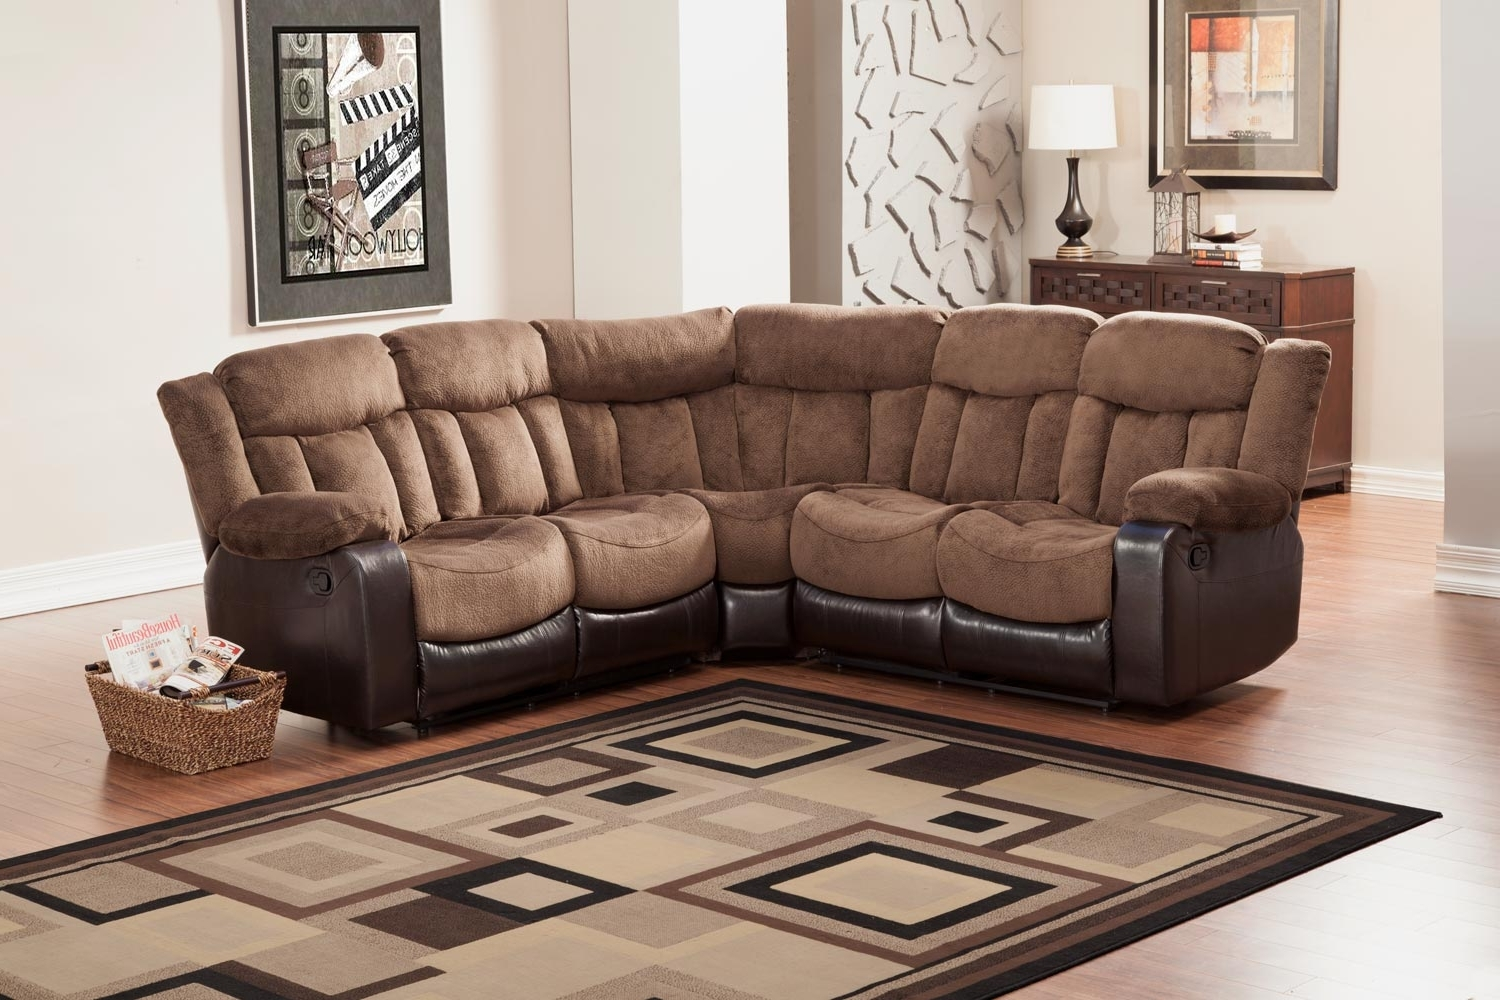 Homelegance Vera Reclining Sectional Sofa – Chocolate – Textured With Regard To Newest Reclining Sectional Sofas (View 6 of 20)